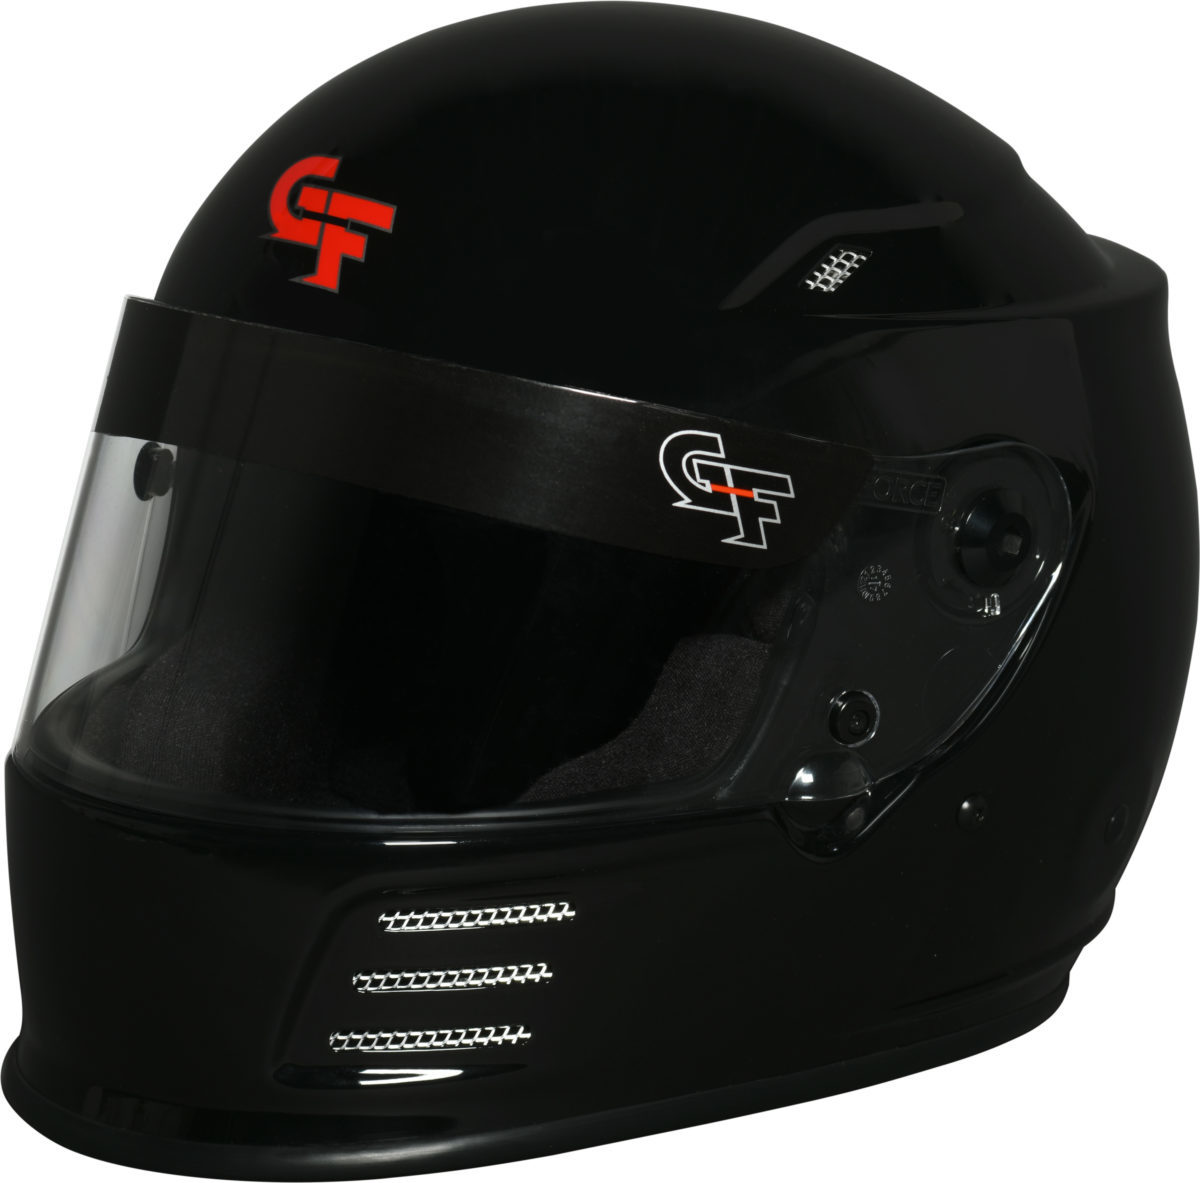 G-Force 3410XLGBK Helmet, Revo, Full Face, Snell SA2015, Head and Neck Support Ready, Black, X-Large, Each